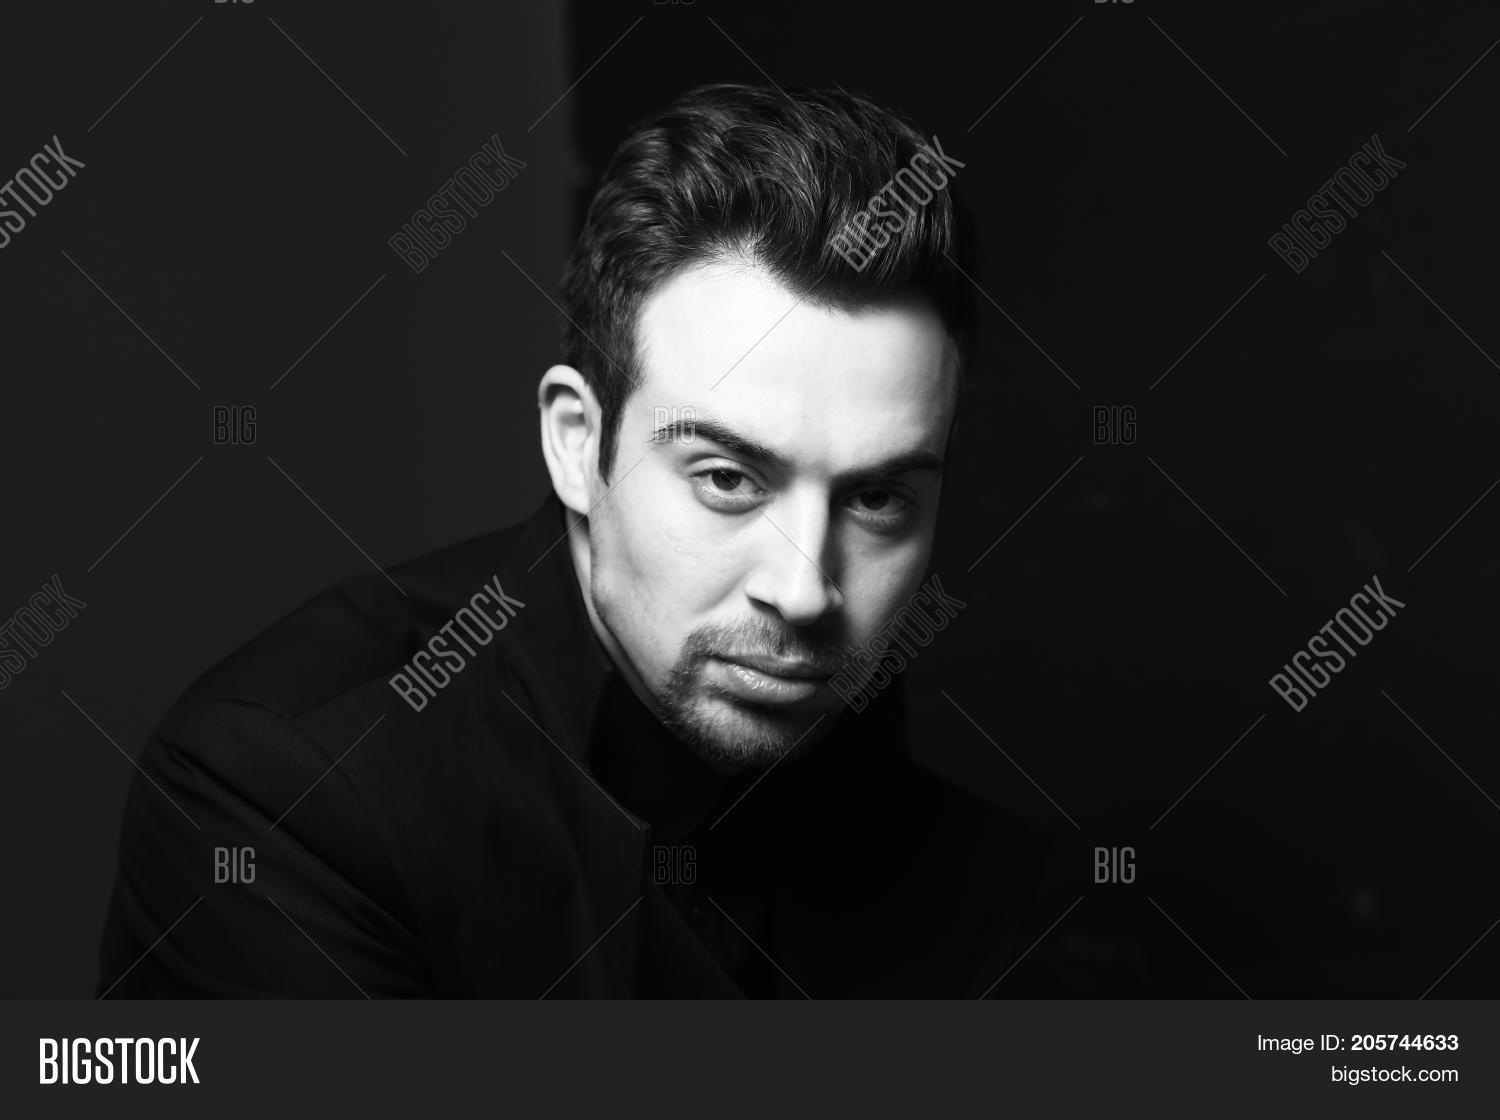 Black and white portrait of a serious young handsome man dreassed in black dramatic lighting